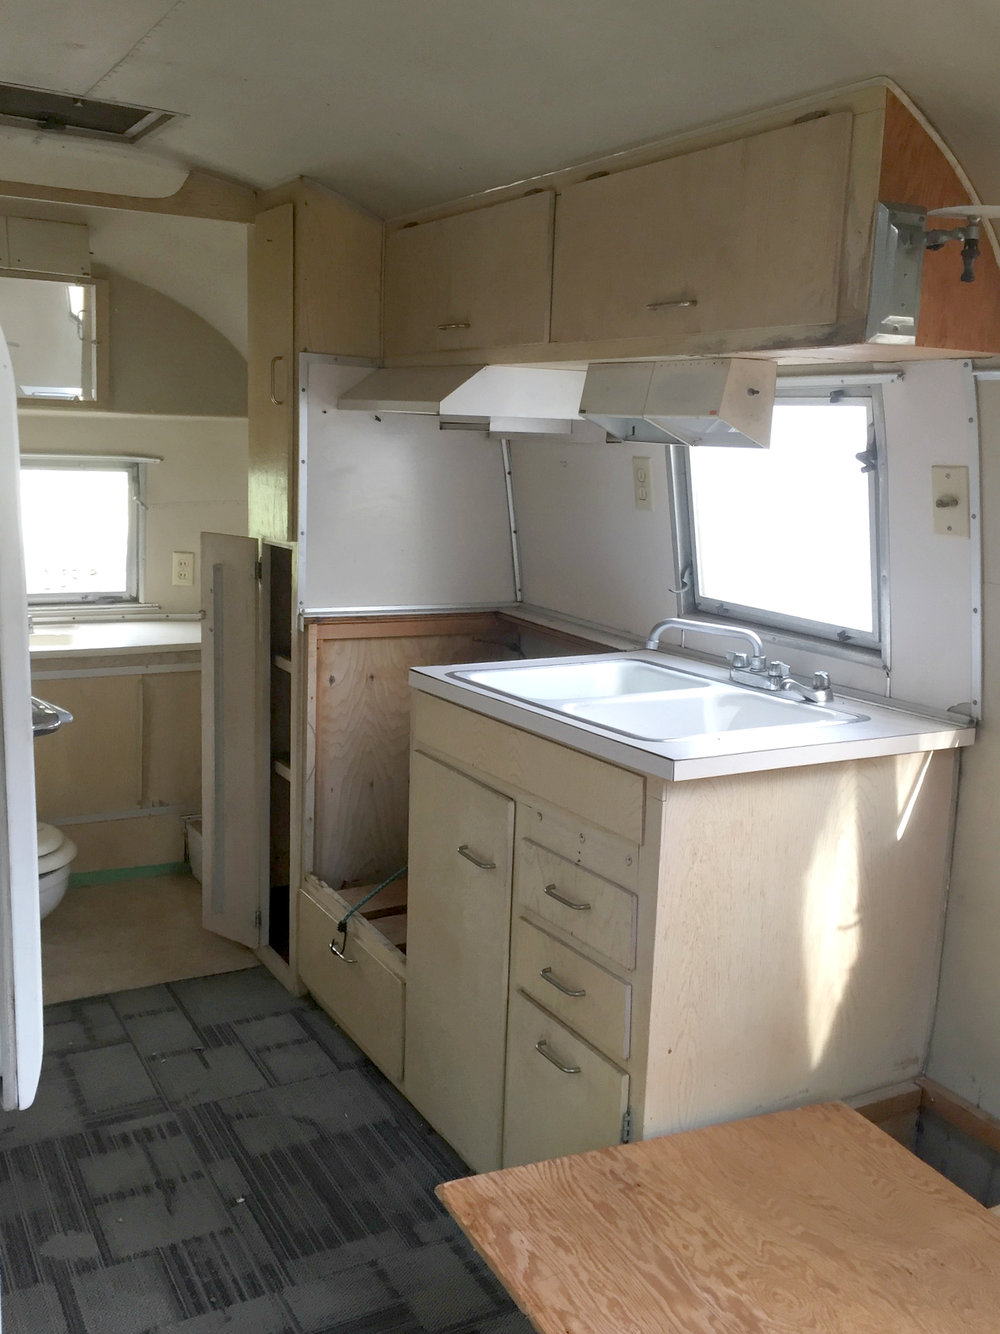 Skye the Airstream - BEFORE reno 20 July 2017.jpg